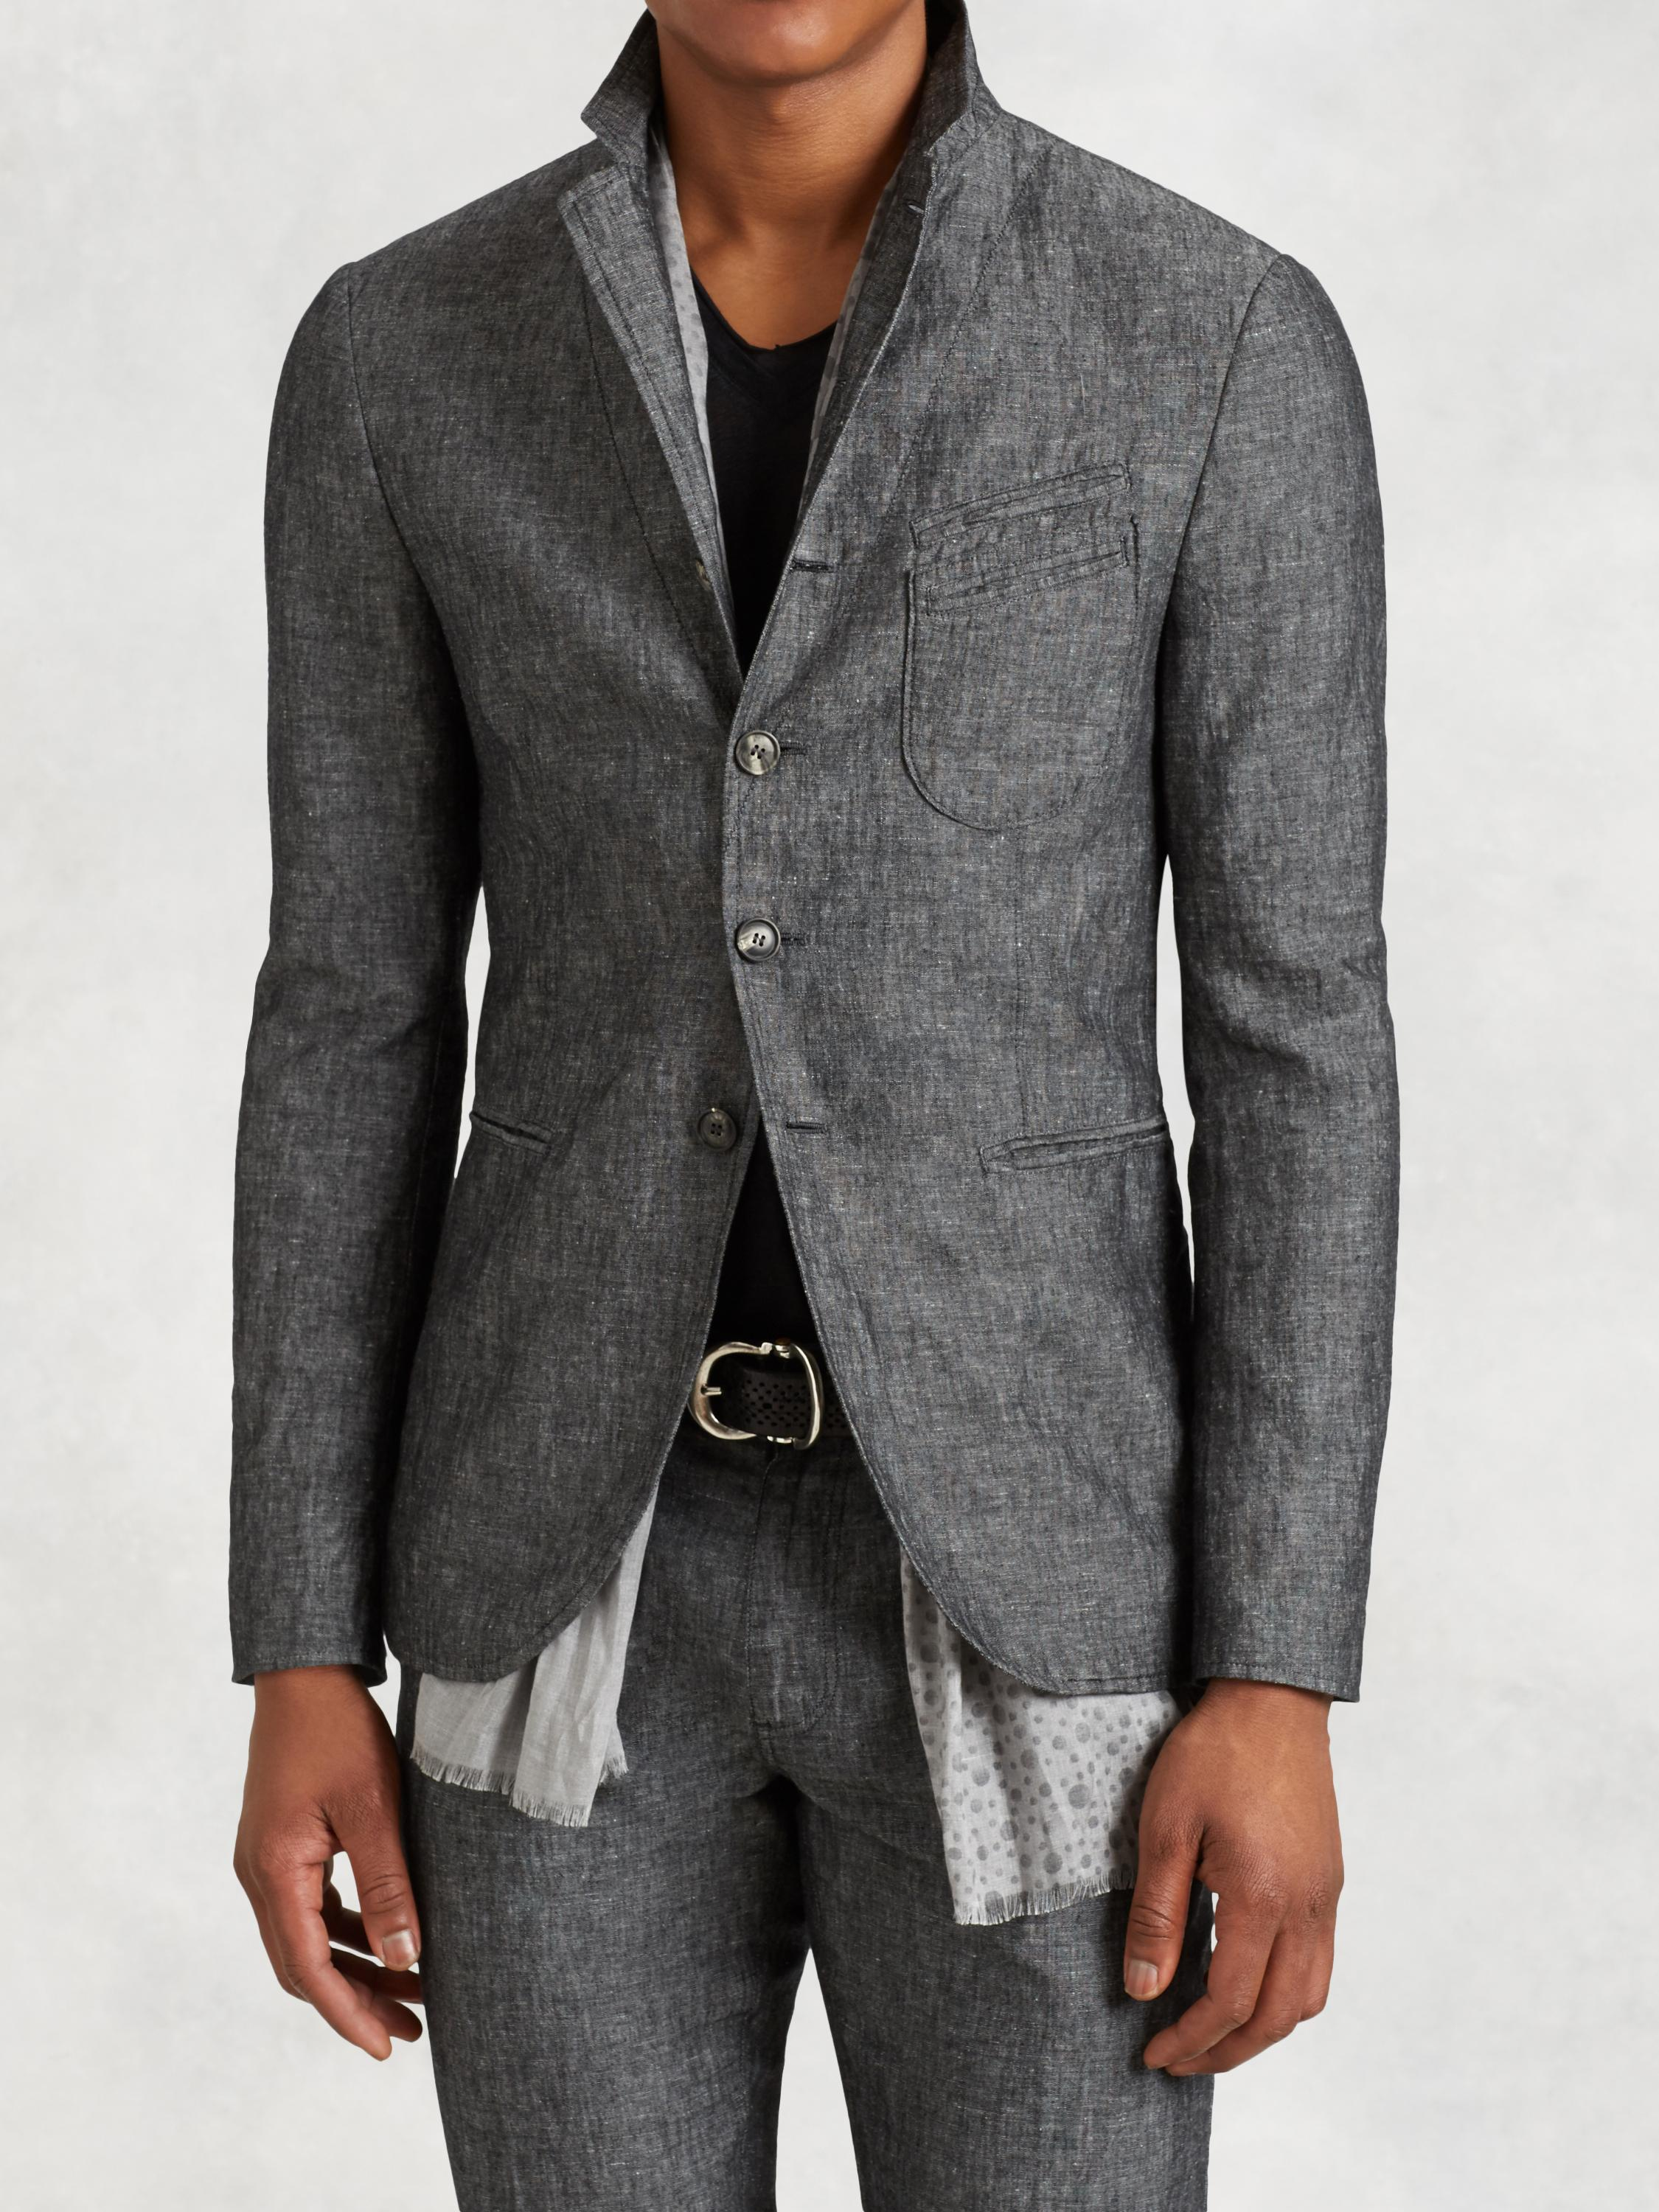 Cotton Linen Stitch Through Jacket